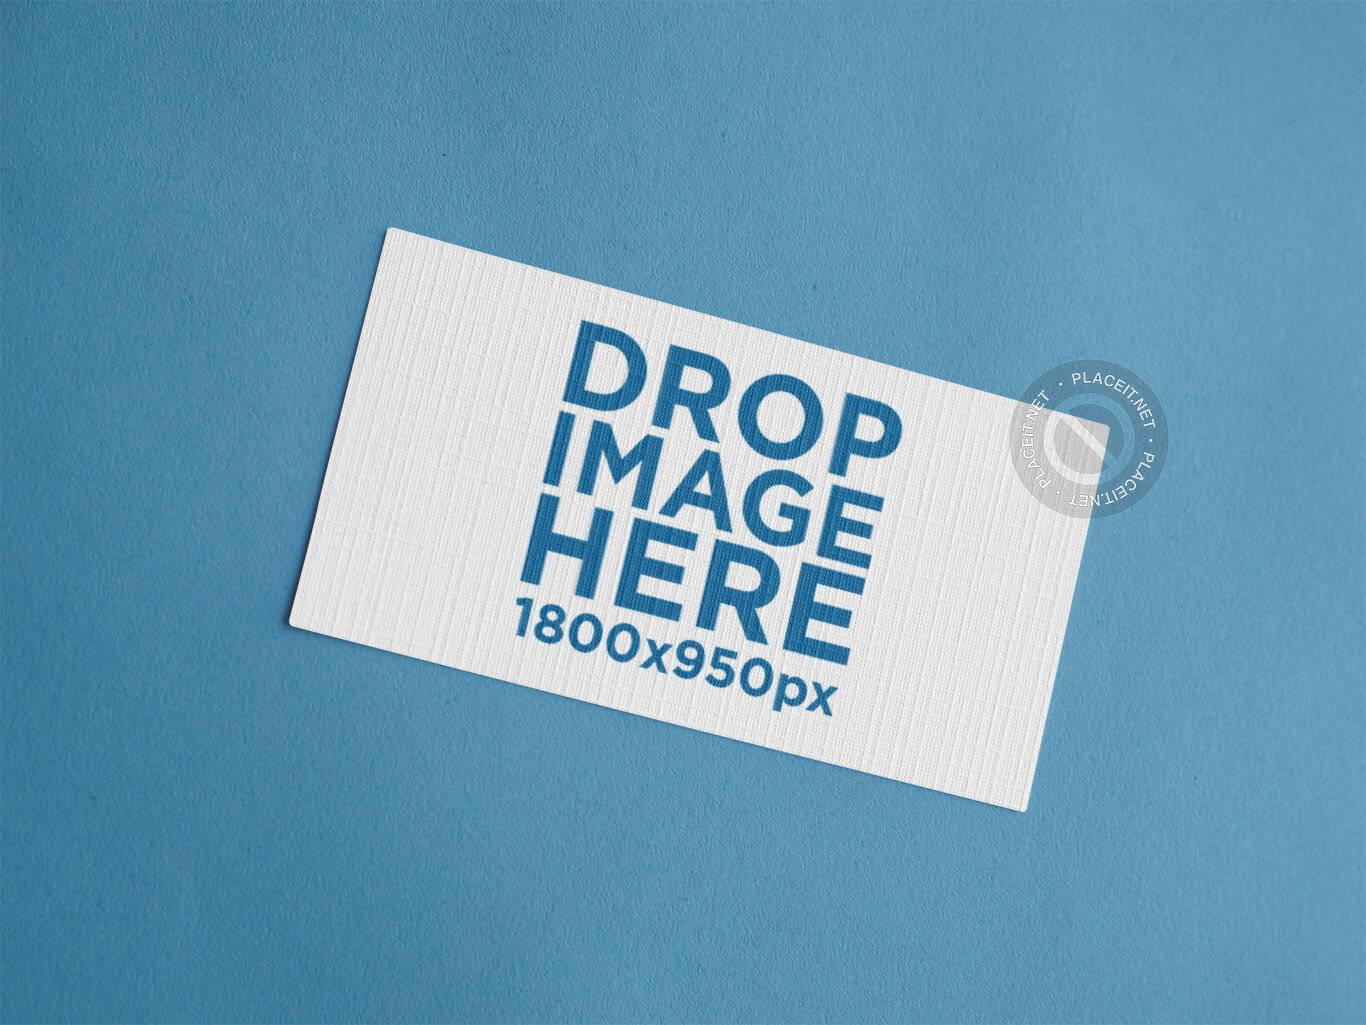 NICE AND CLEAN EMBOSSED BUSINESS CARD MOCKUP TEMPLATE OVER A BLUE BACKGROUND